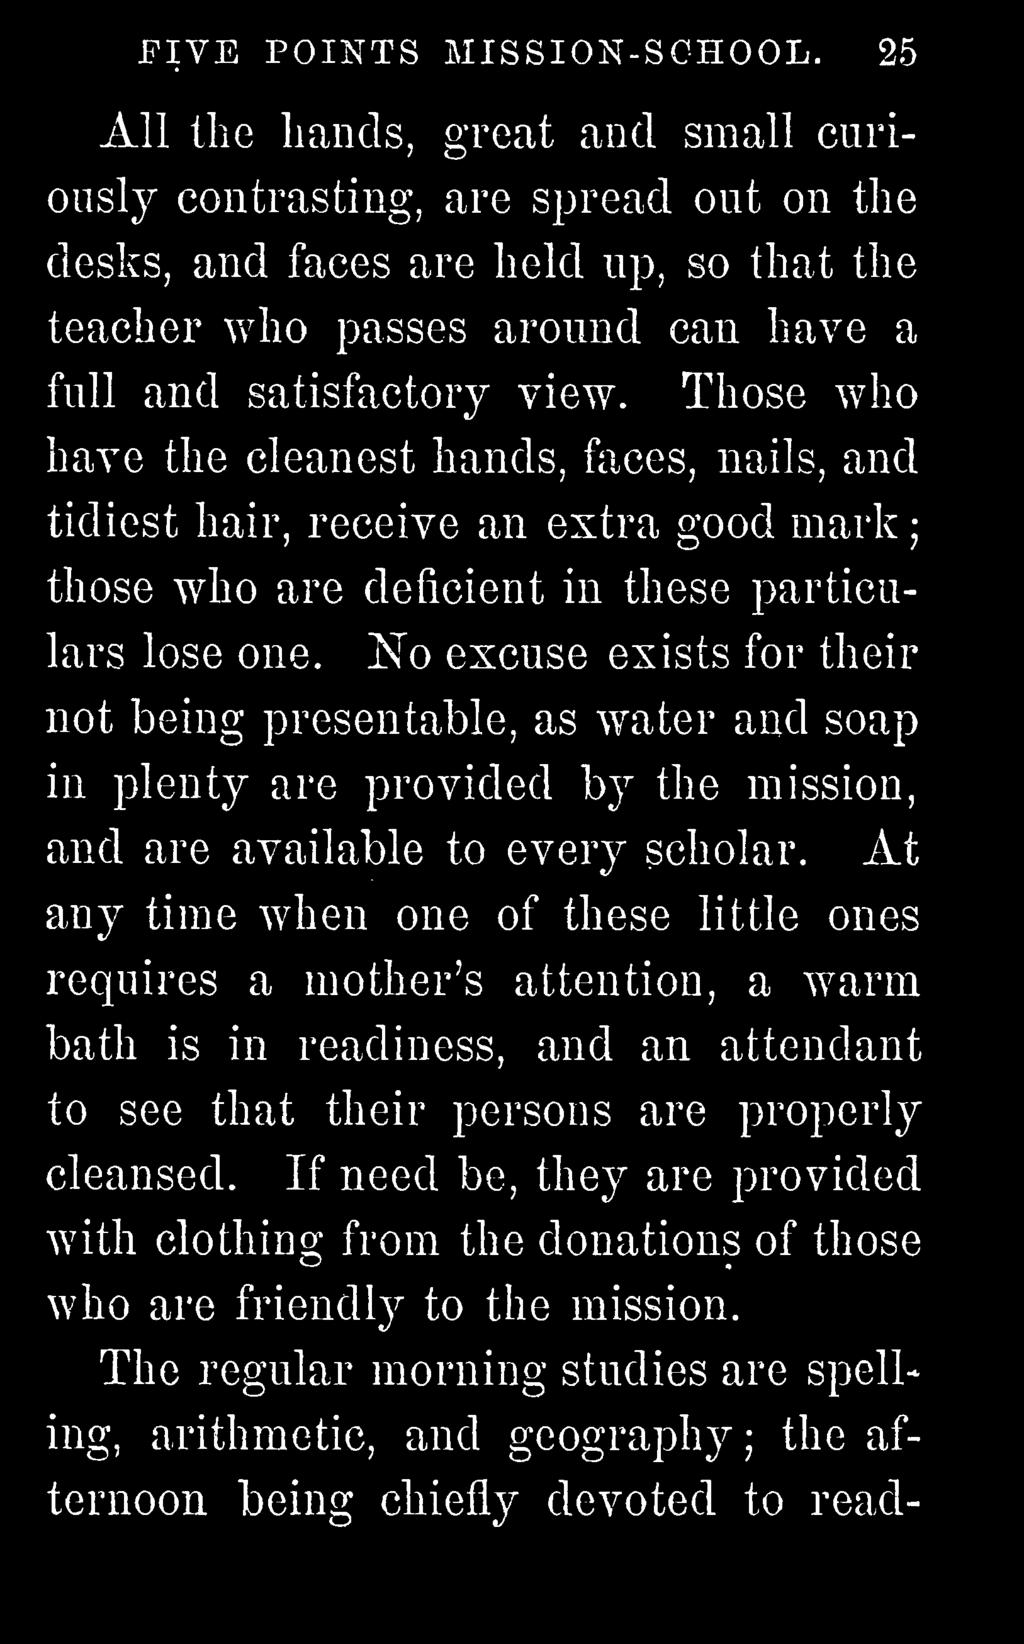 Those who have the cleanest hands, f^ices, nails, and tidiest hair, receive an extra good mark ; those who are deficient in these particulars lose one.